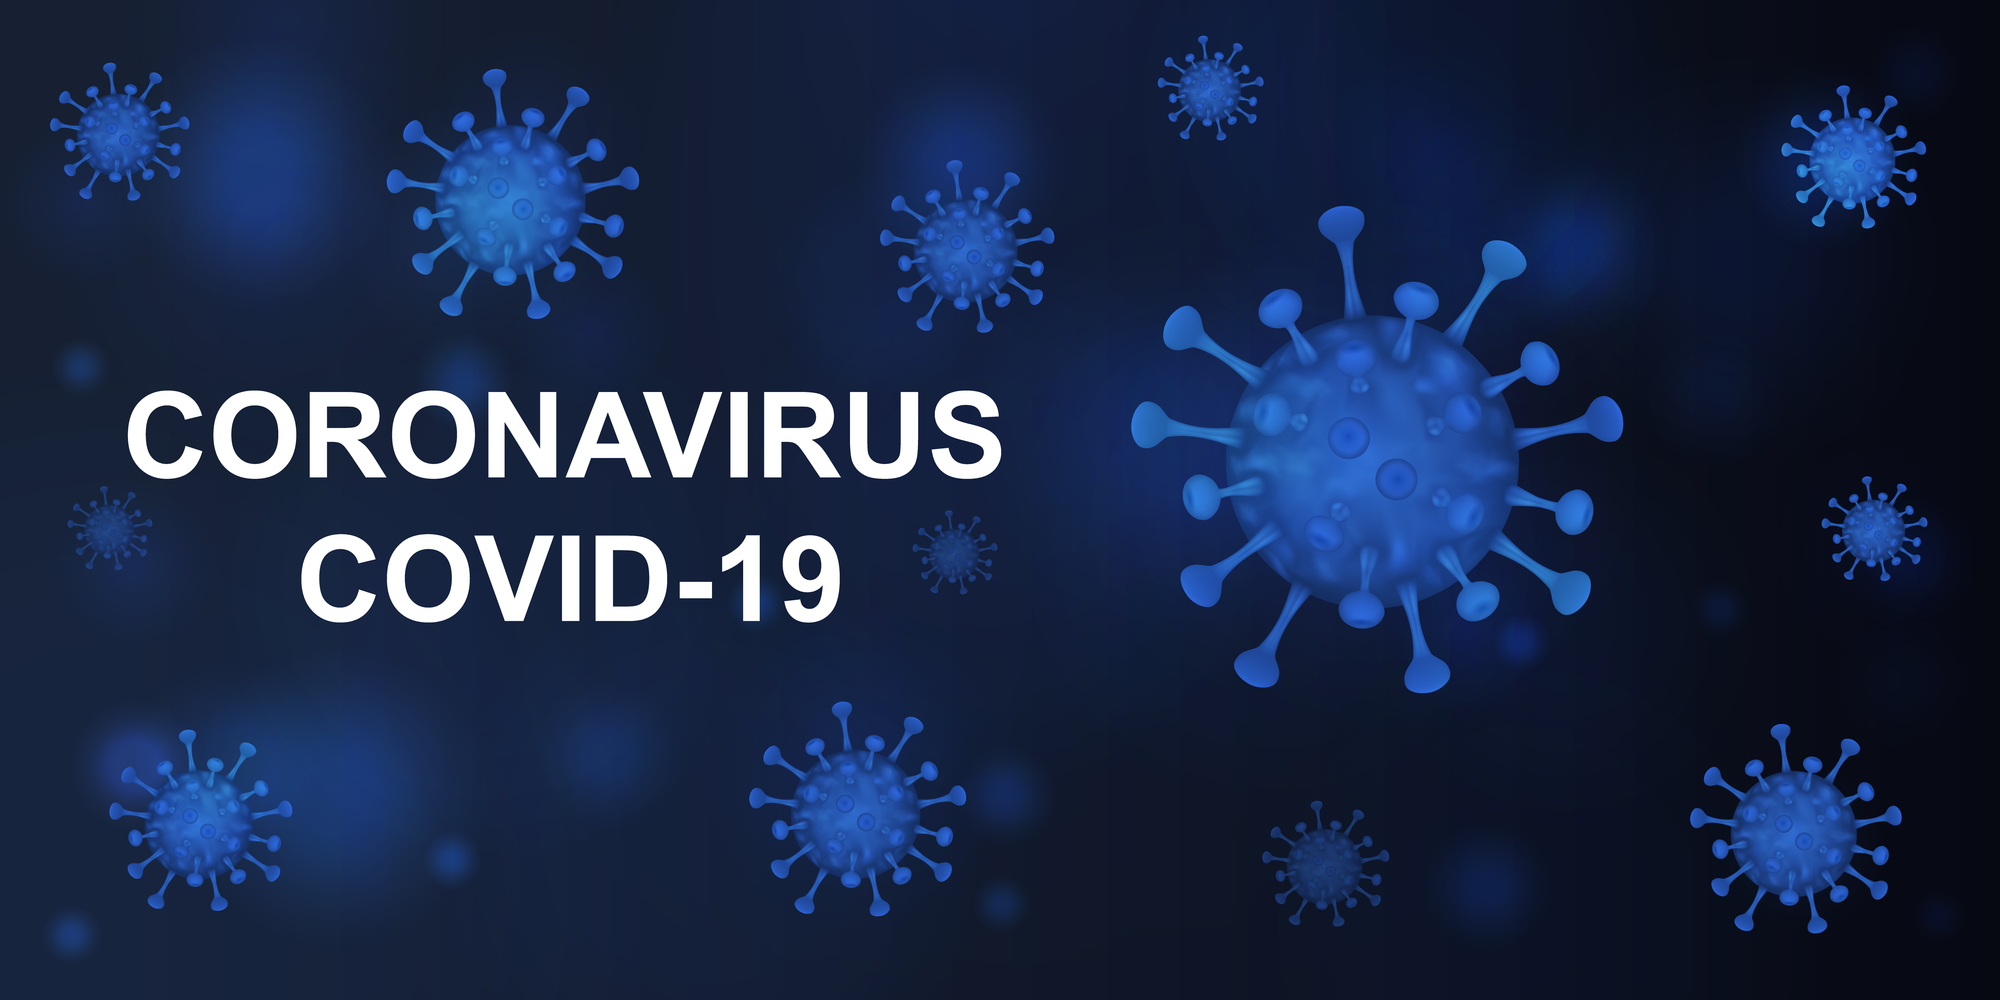 Illustration of a coronavirus on a dark blue background